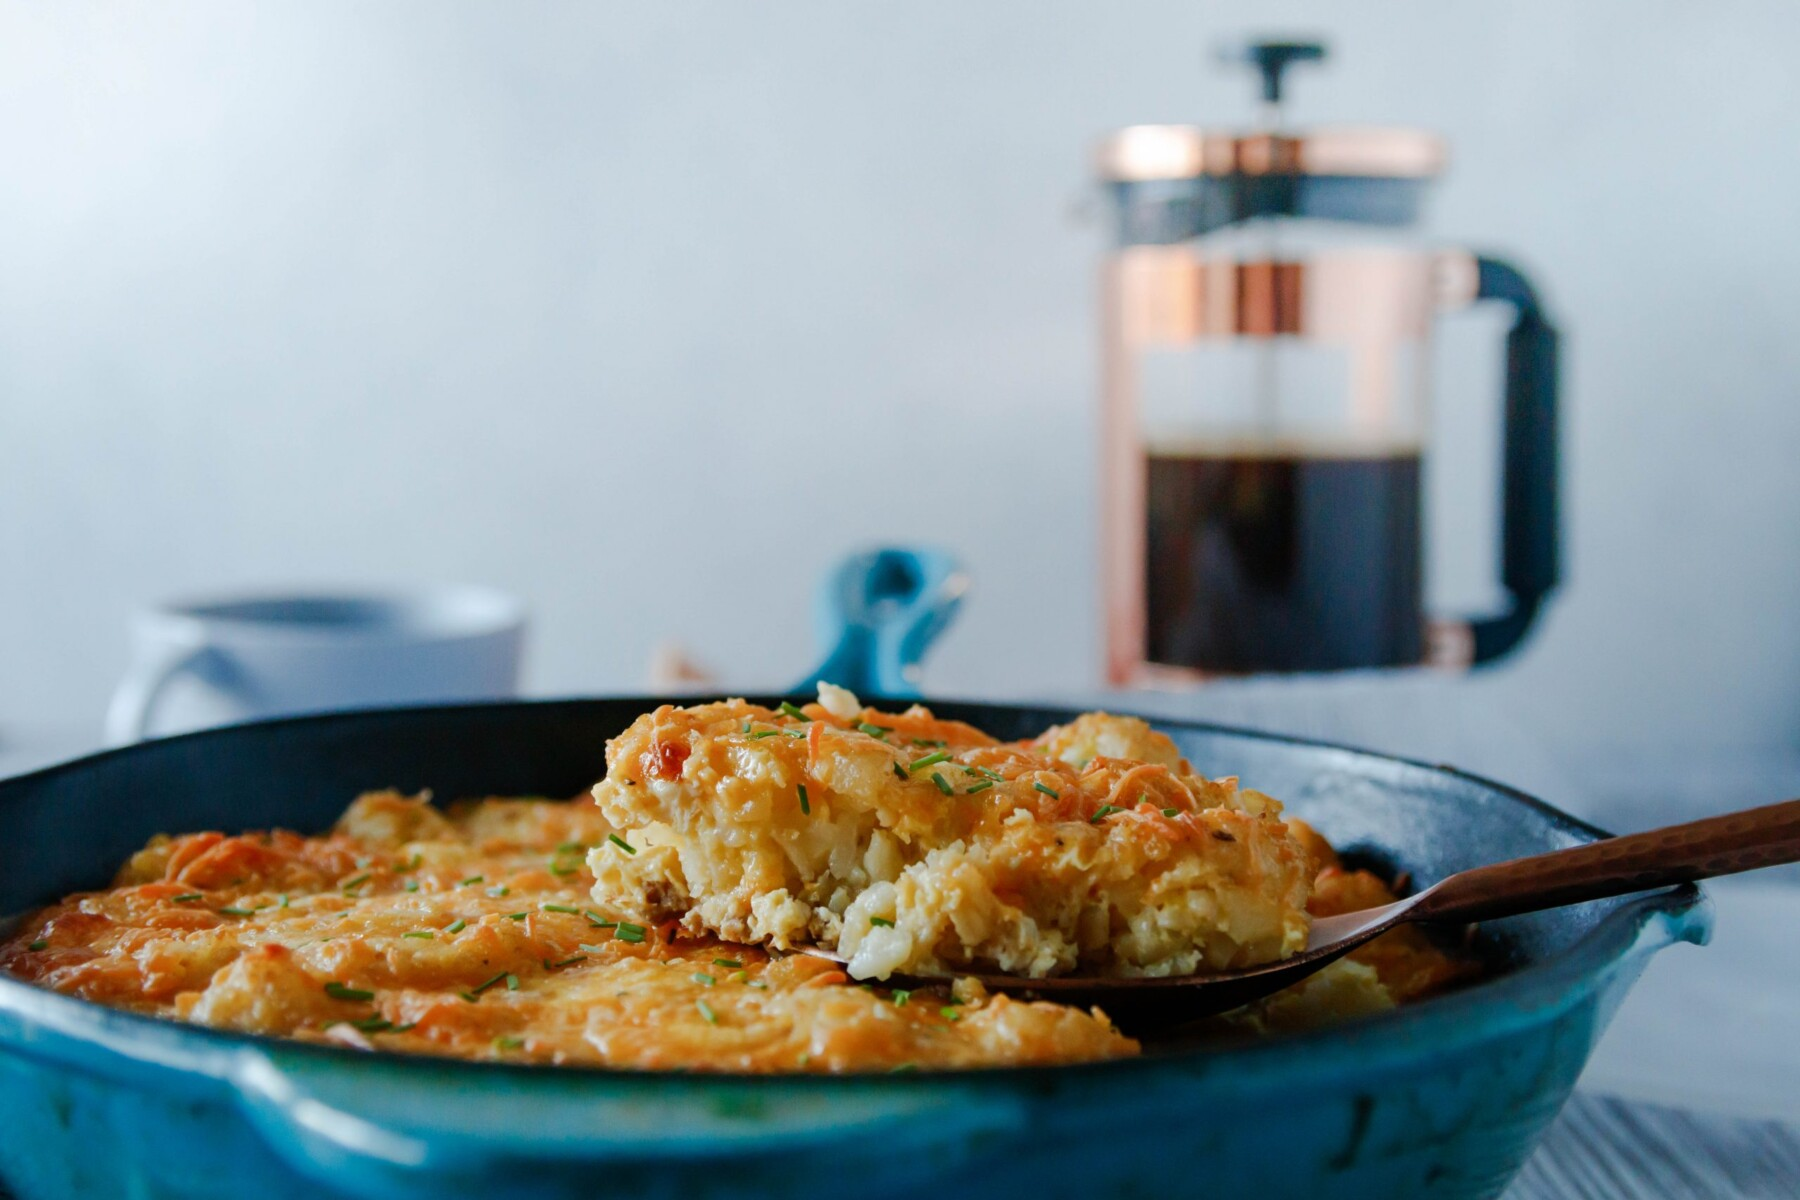 horizontal photo of a spatula lifting out a slice of tater tot casserole